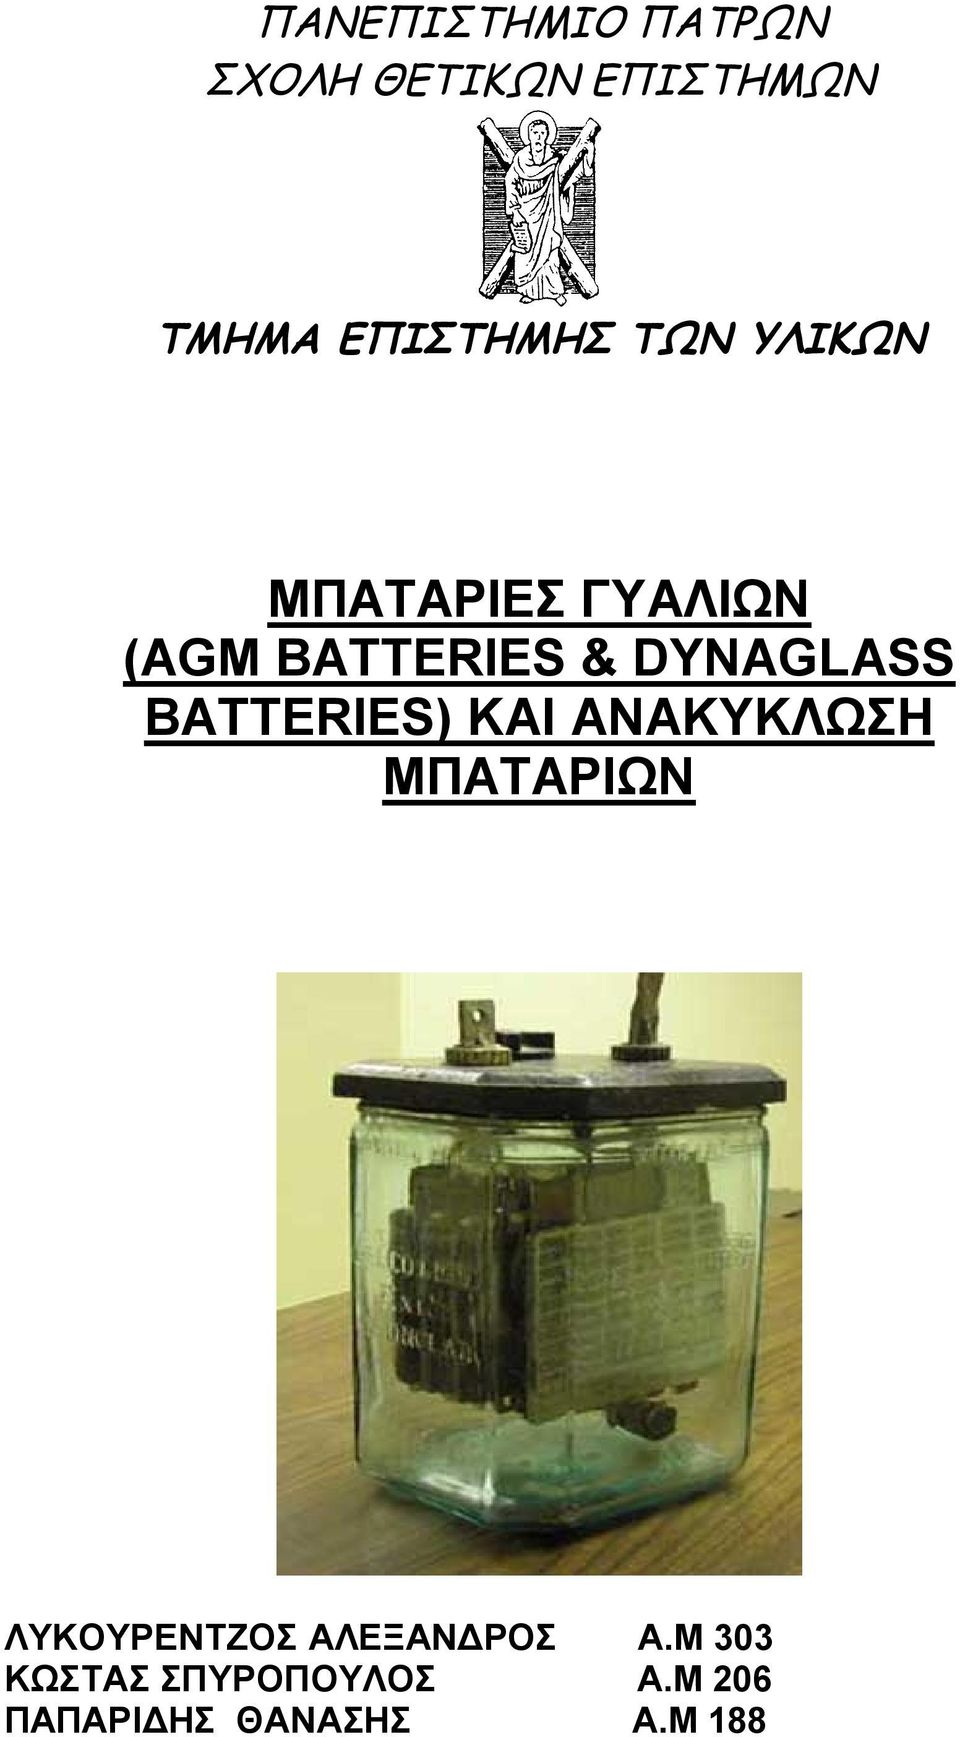 DYNAGLASS BATTERIES) ΚΑΙ ΑΝΑΚΥΚΛΩΣΗ ΜΠΑΤΑΡΙΩΝ ΛΥΚΟΥΡΕΝΤΖΟΣ